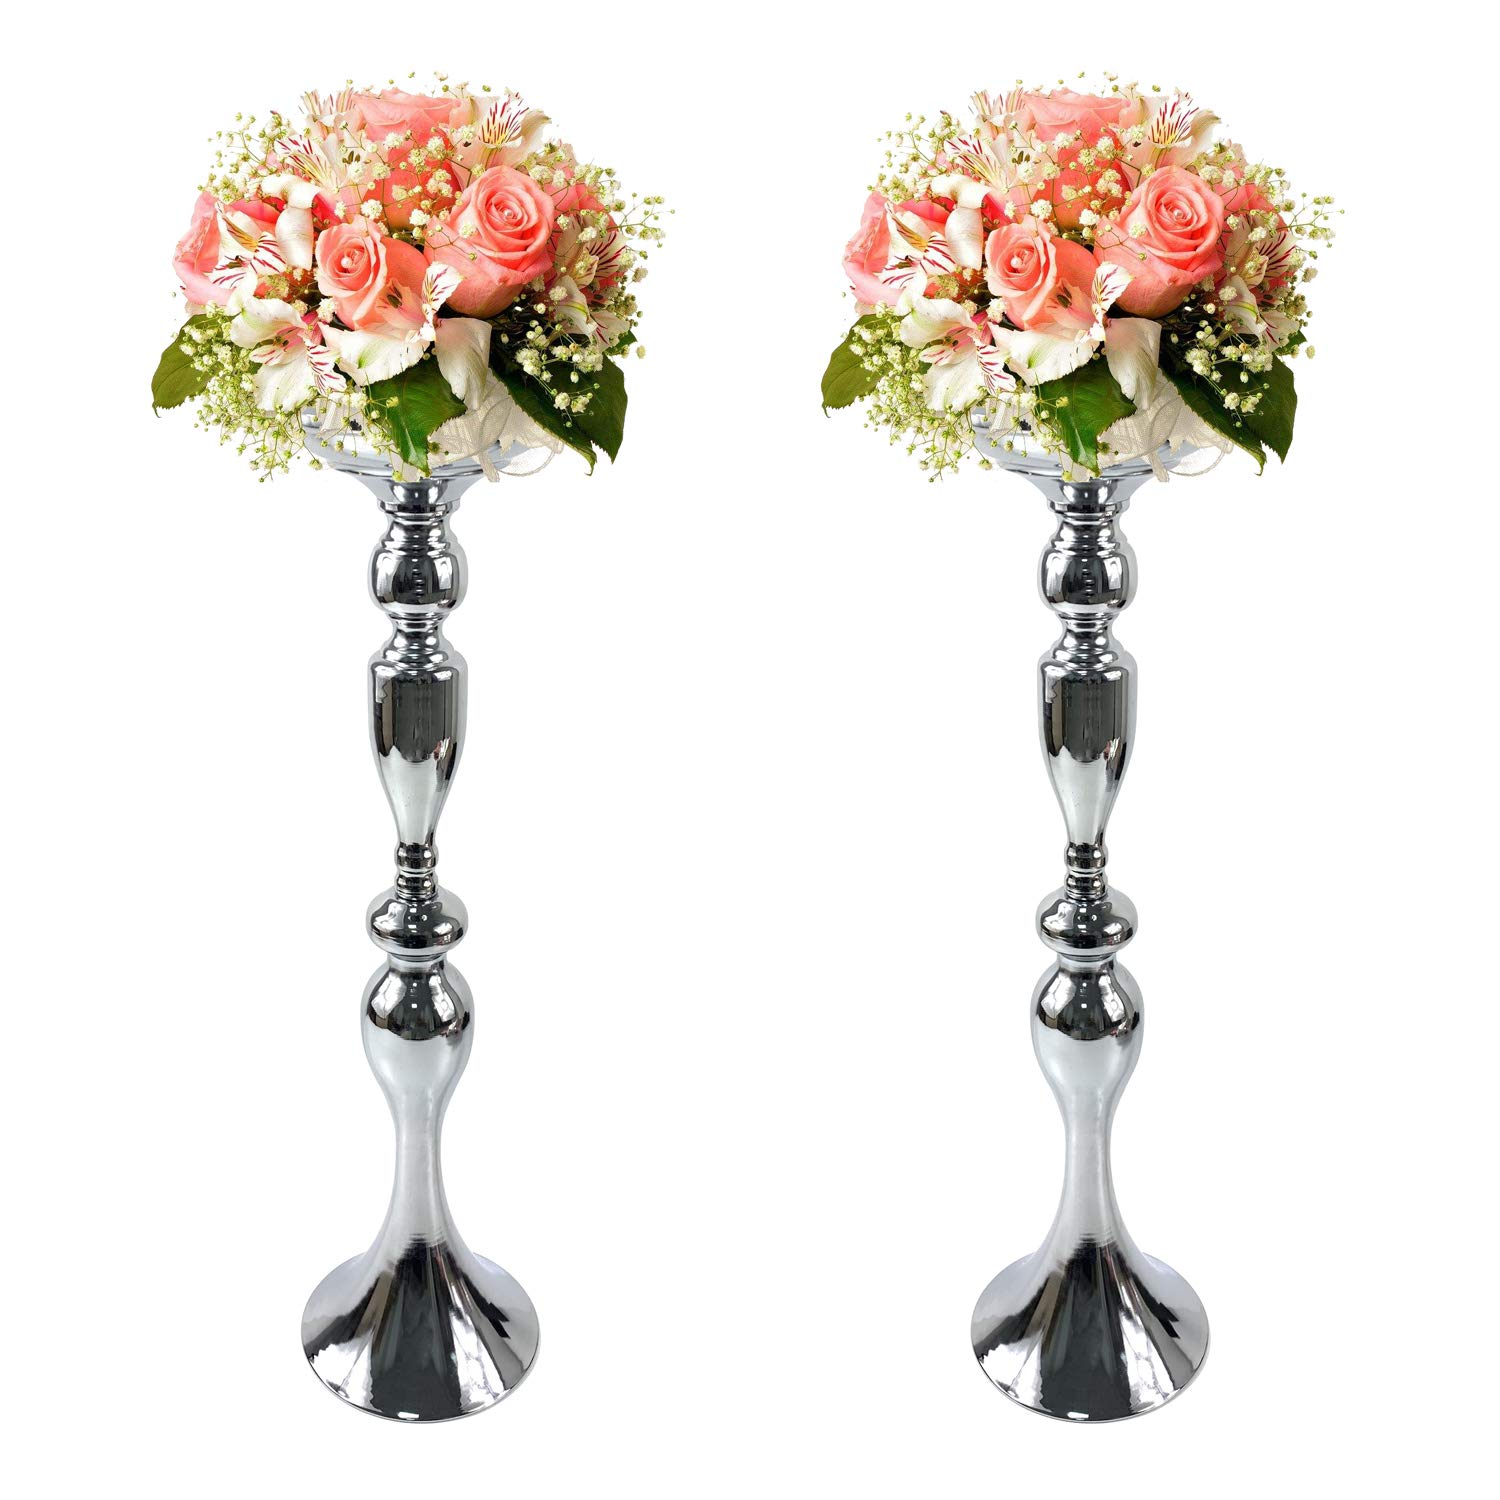 Gold Fortune 2 Pieces 19.5 Inch (50CM) Height Metal Candle Holder Stand Wedding Flower Rack Centerpiece Event (Silver, 19.5'')